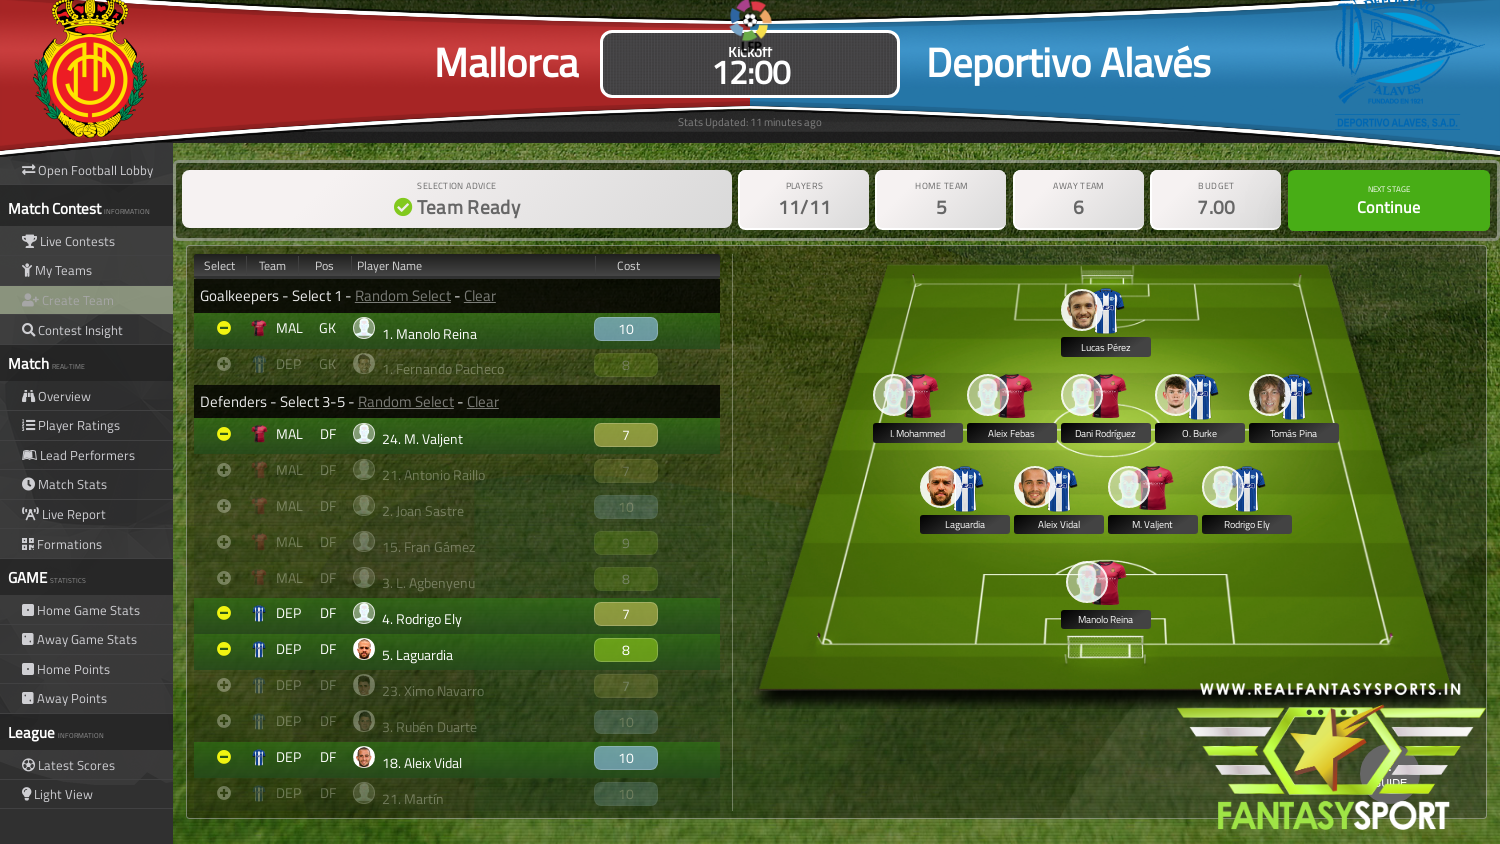 Mallorca Vs Deportivo Alav S Fantasy Football Team